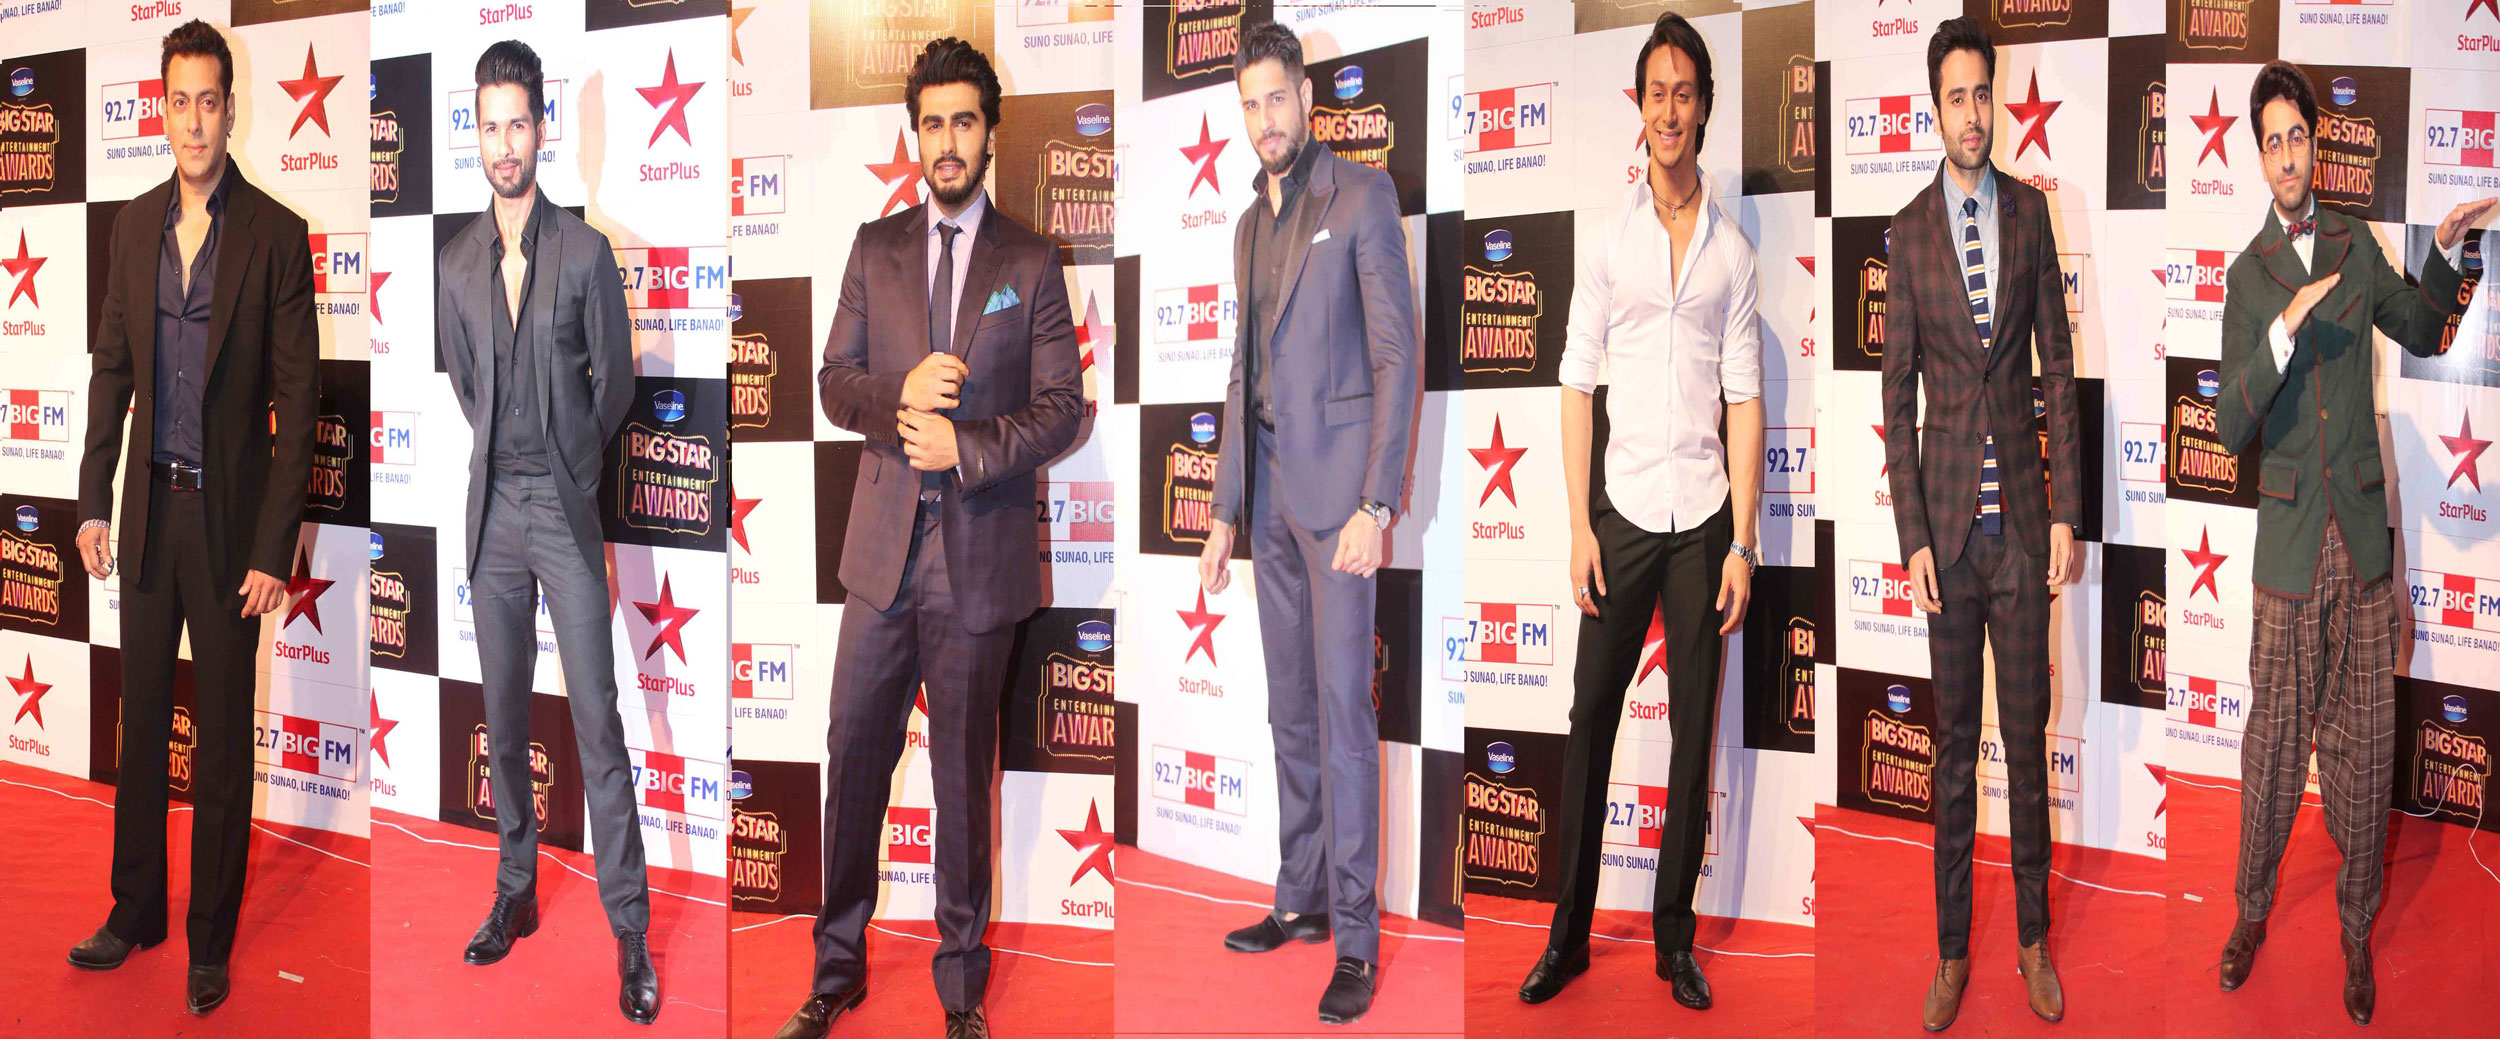 SuperStar's at Red Carpet of 92.7 BIG FM Big Star Entertainment Awards.